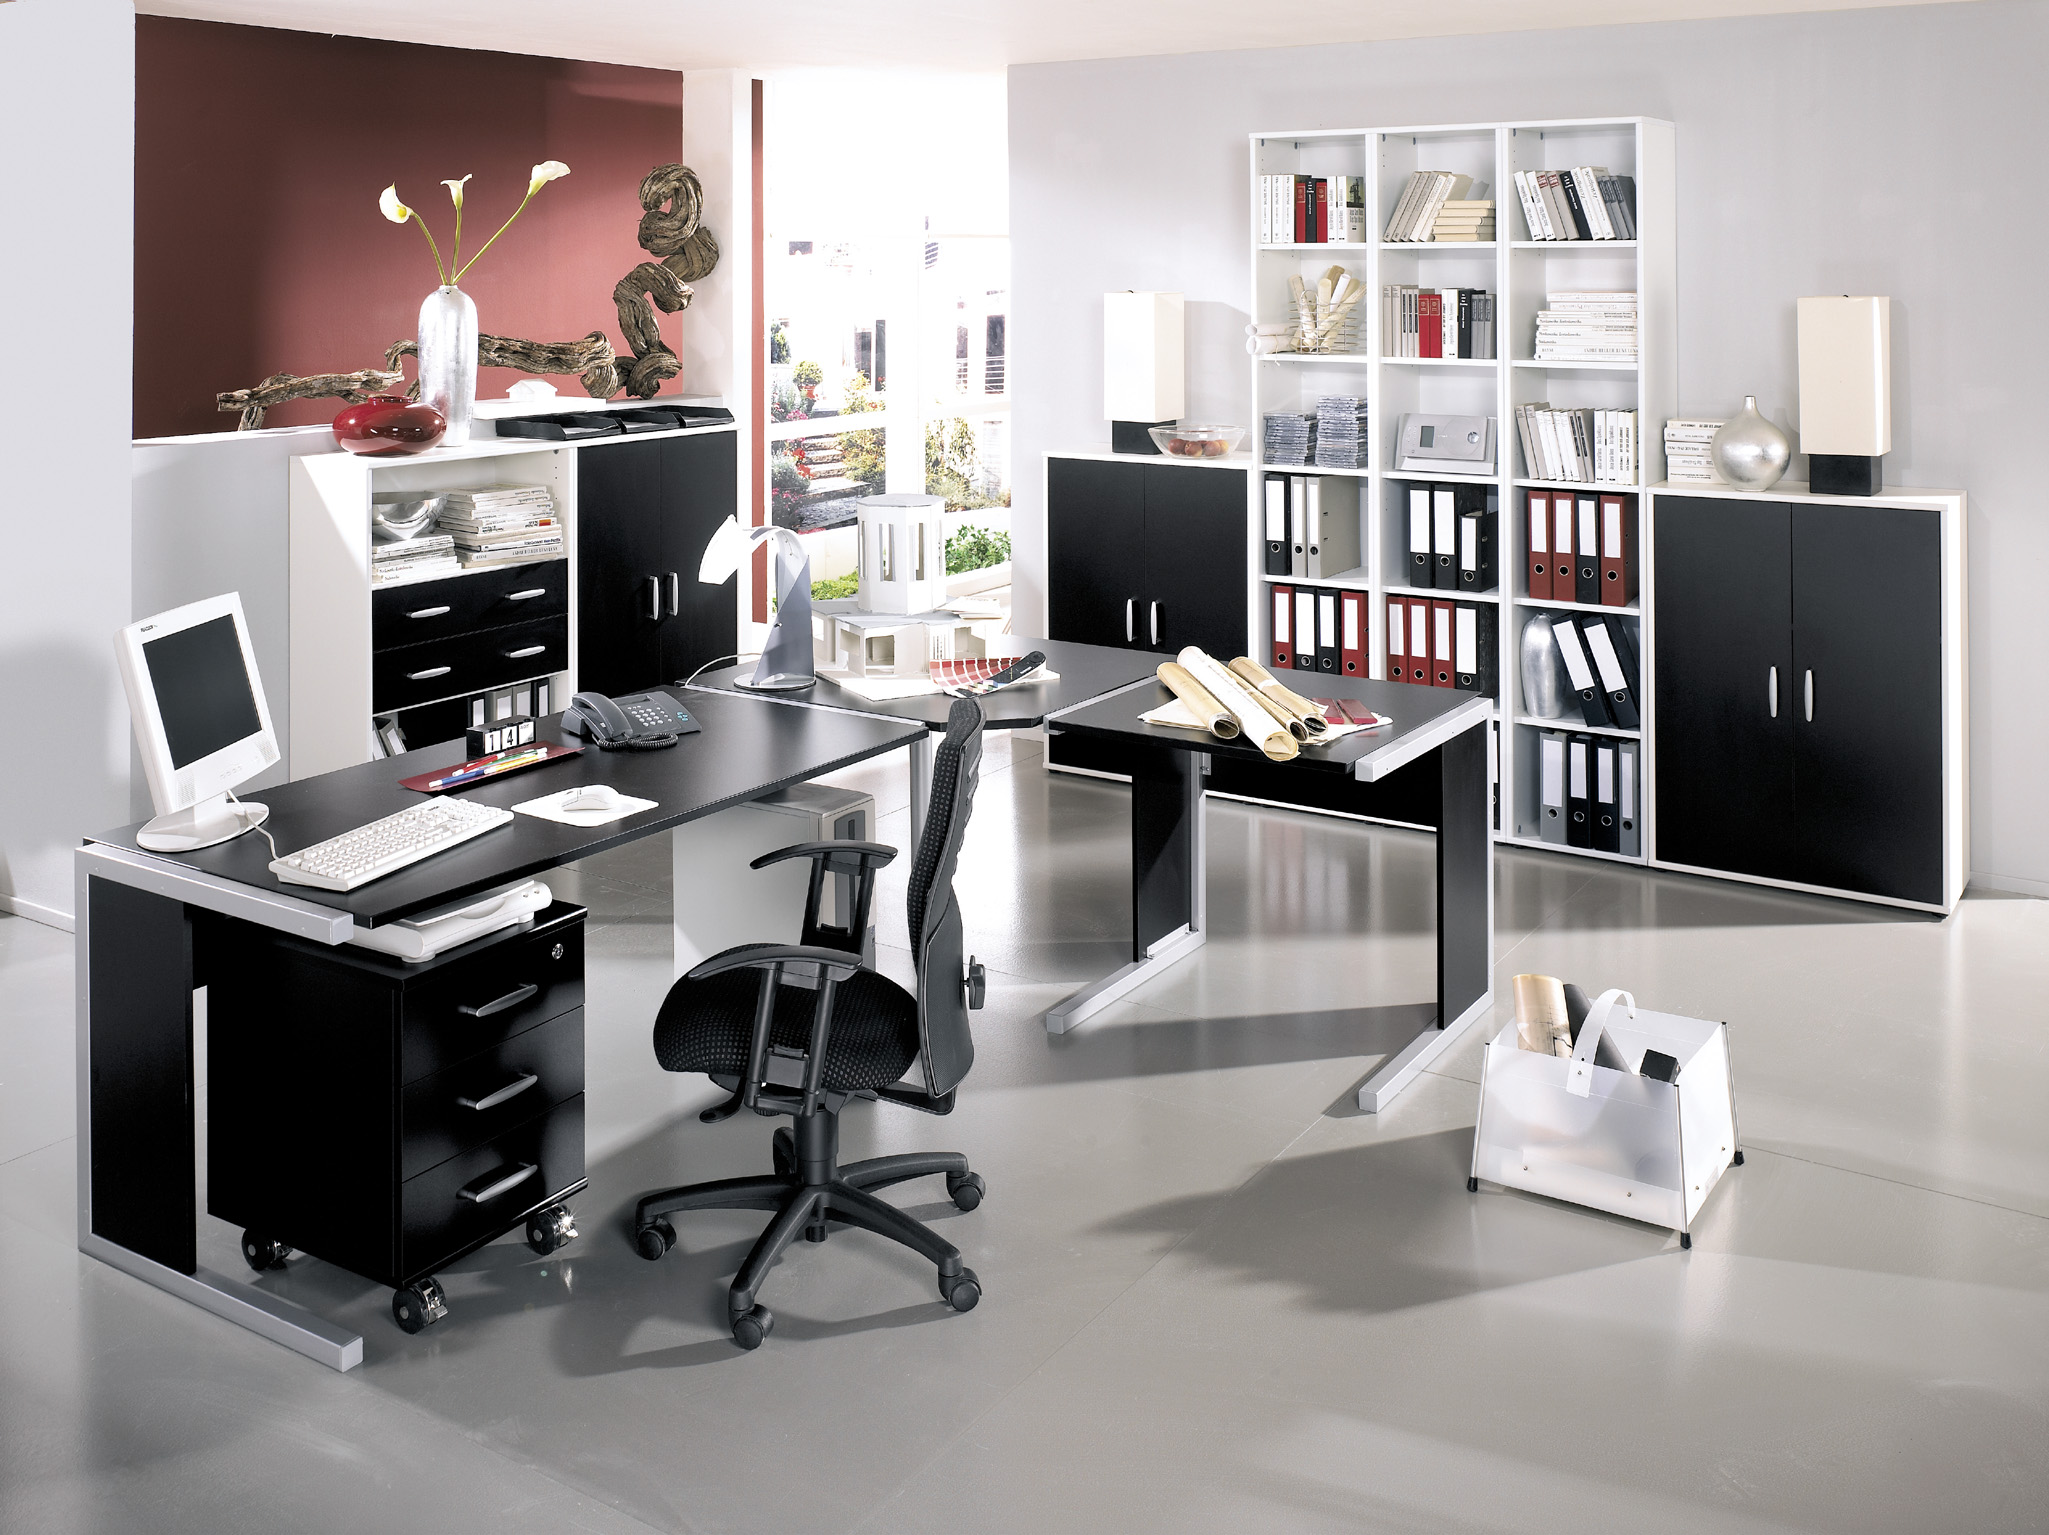 Contemporary Home Office Design Ideas: Four Top Tips For Furnishing An Office